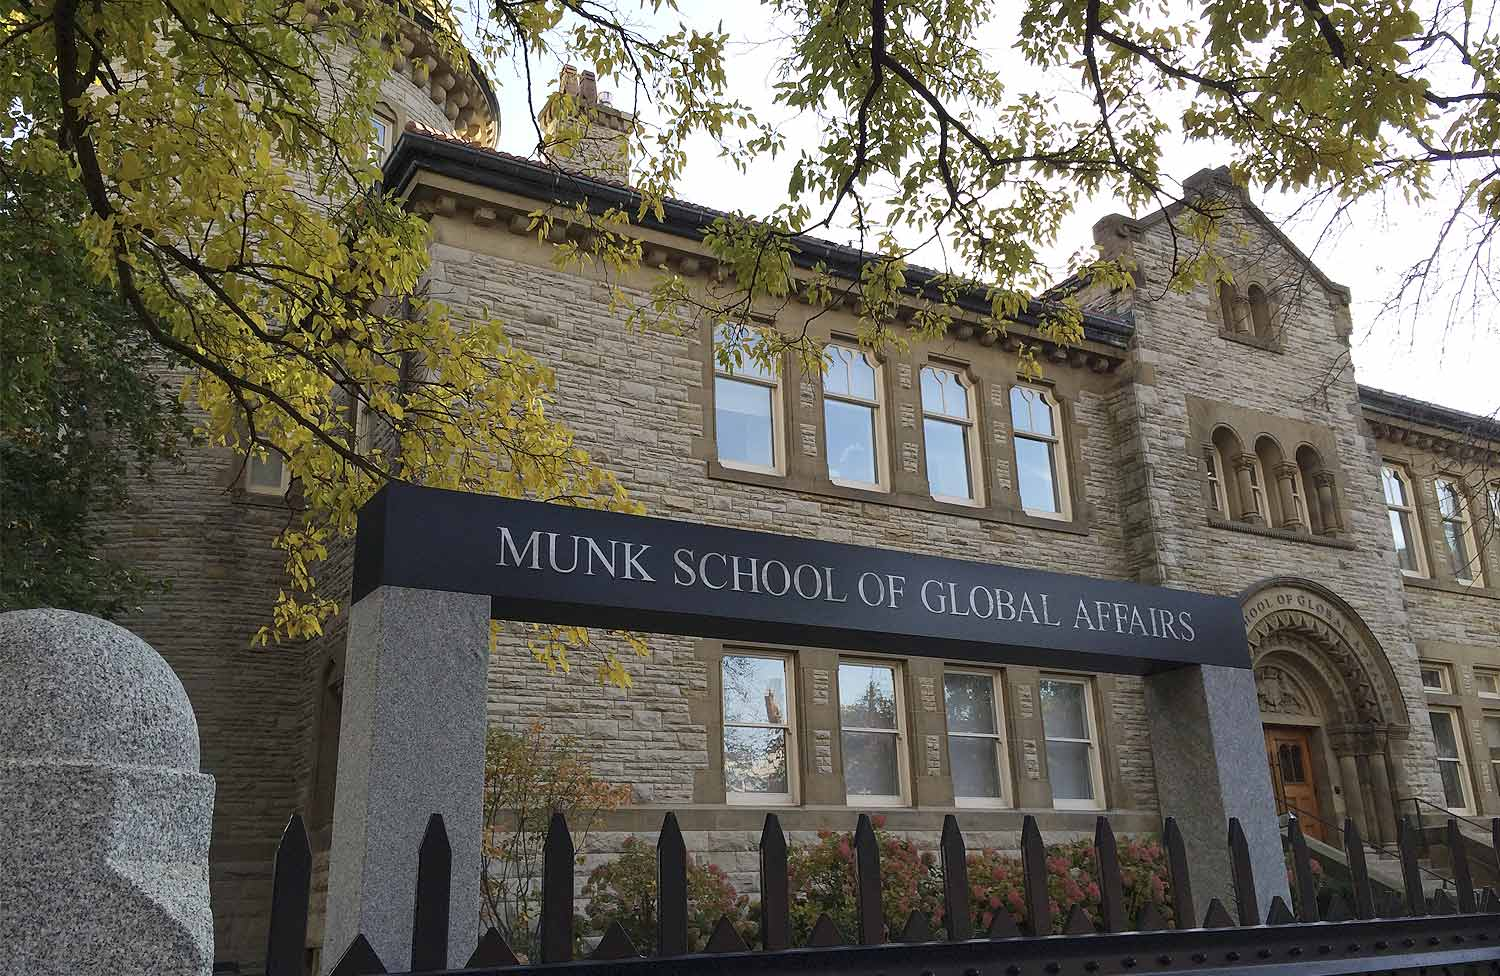 Fifth anniversary of the Munk School of Global Affairs